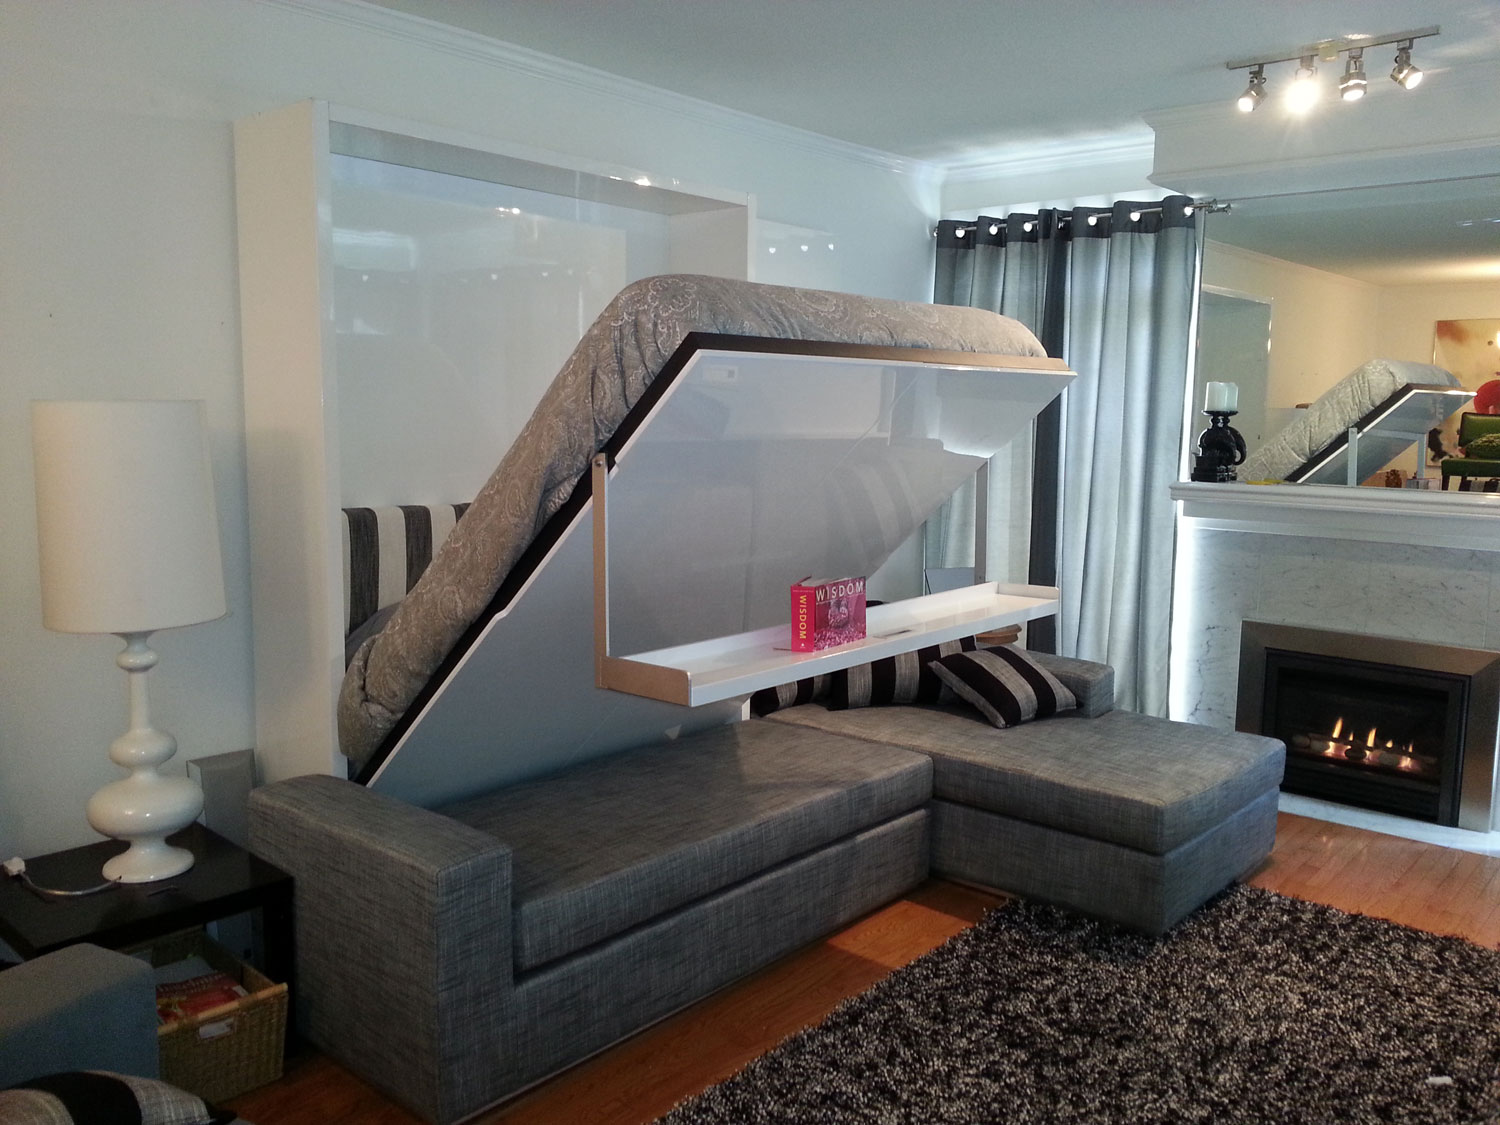 Space Saving Bedroom Ideas With Beds That Fold Into Wall HomesFeed